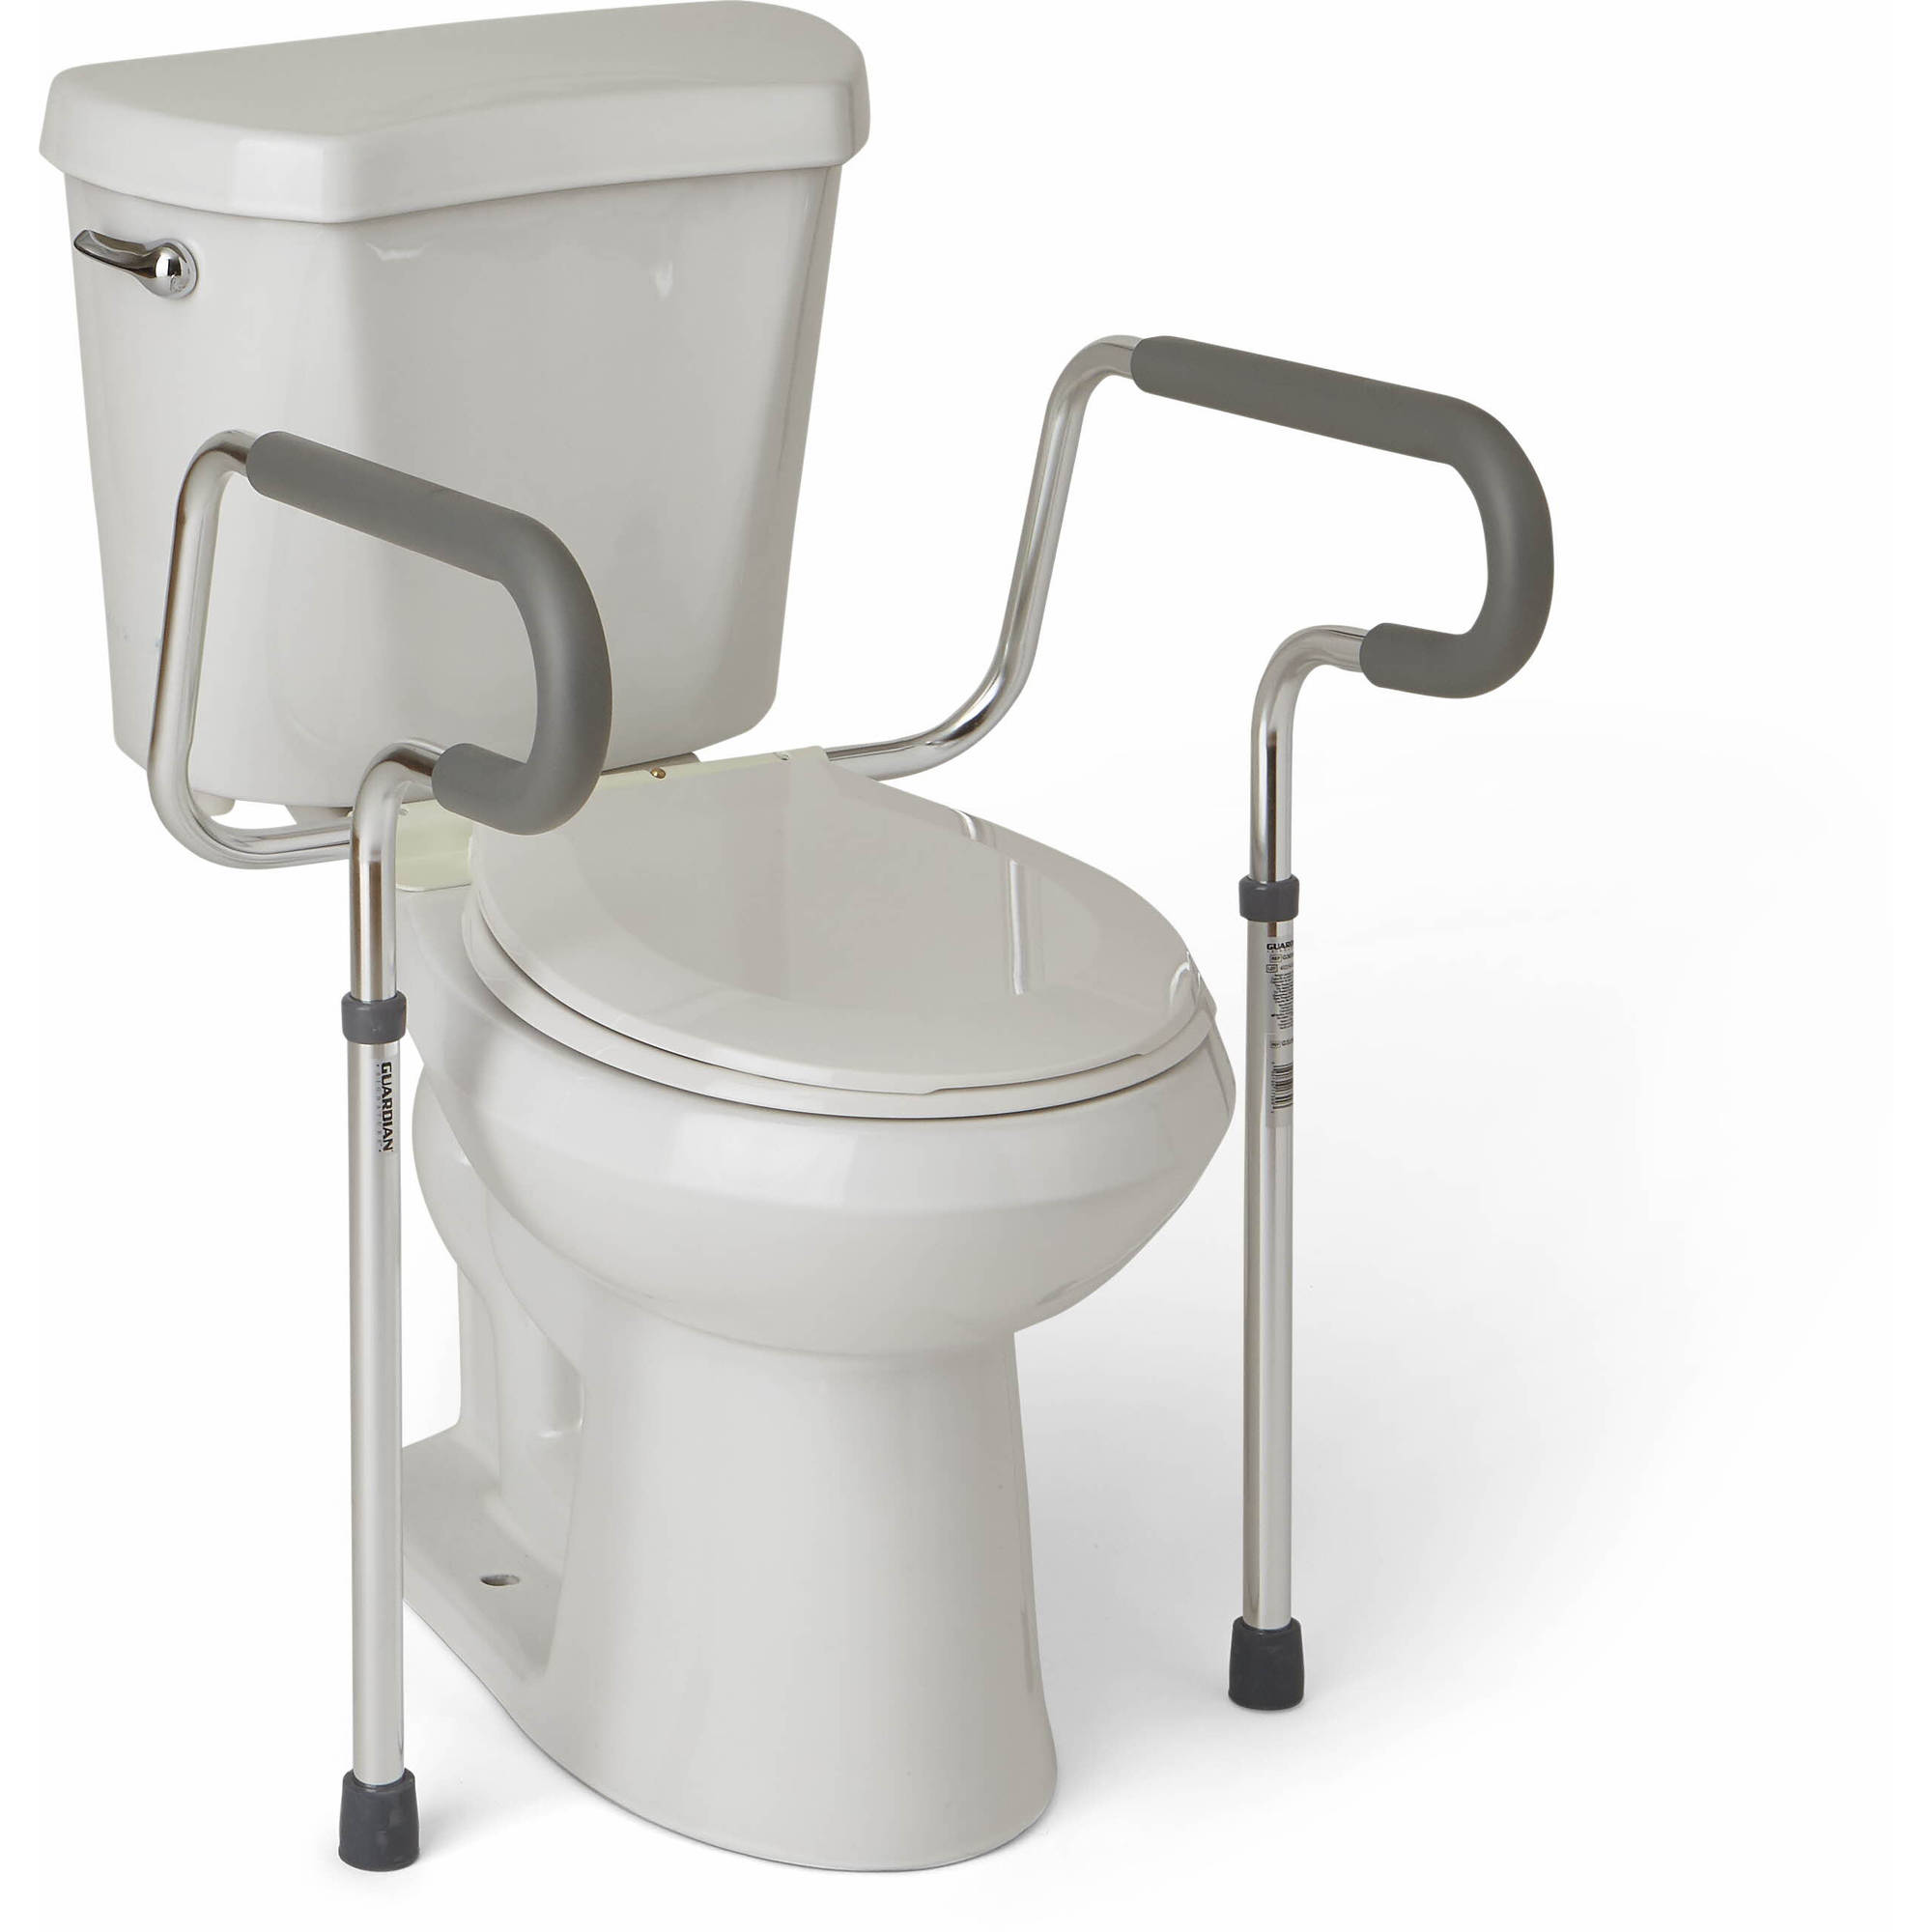 Medline Toilet Safety Frame Rails